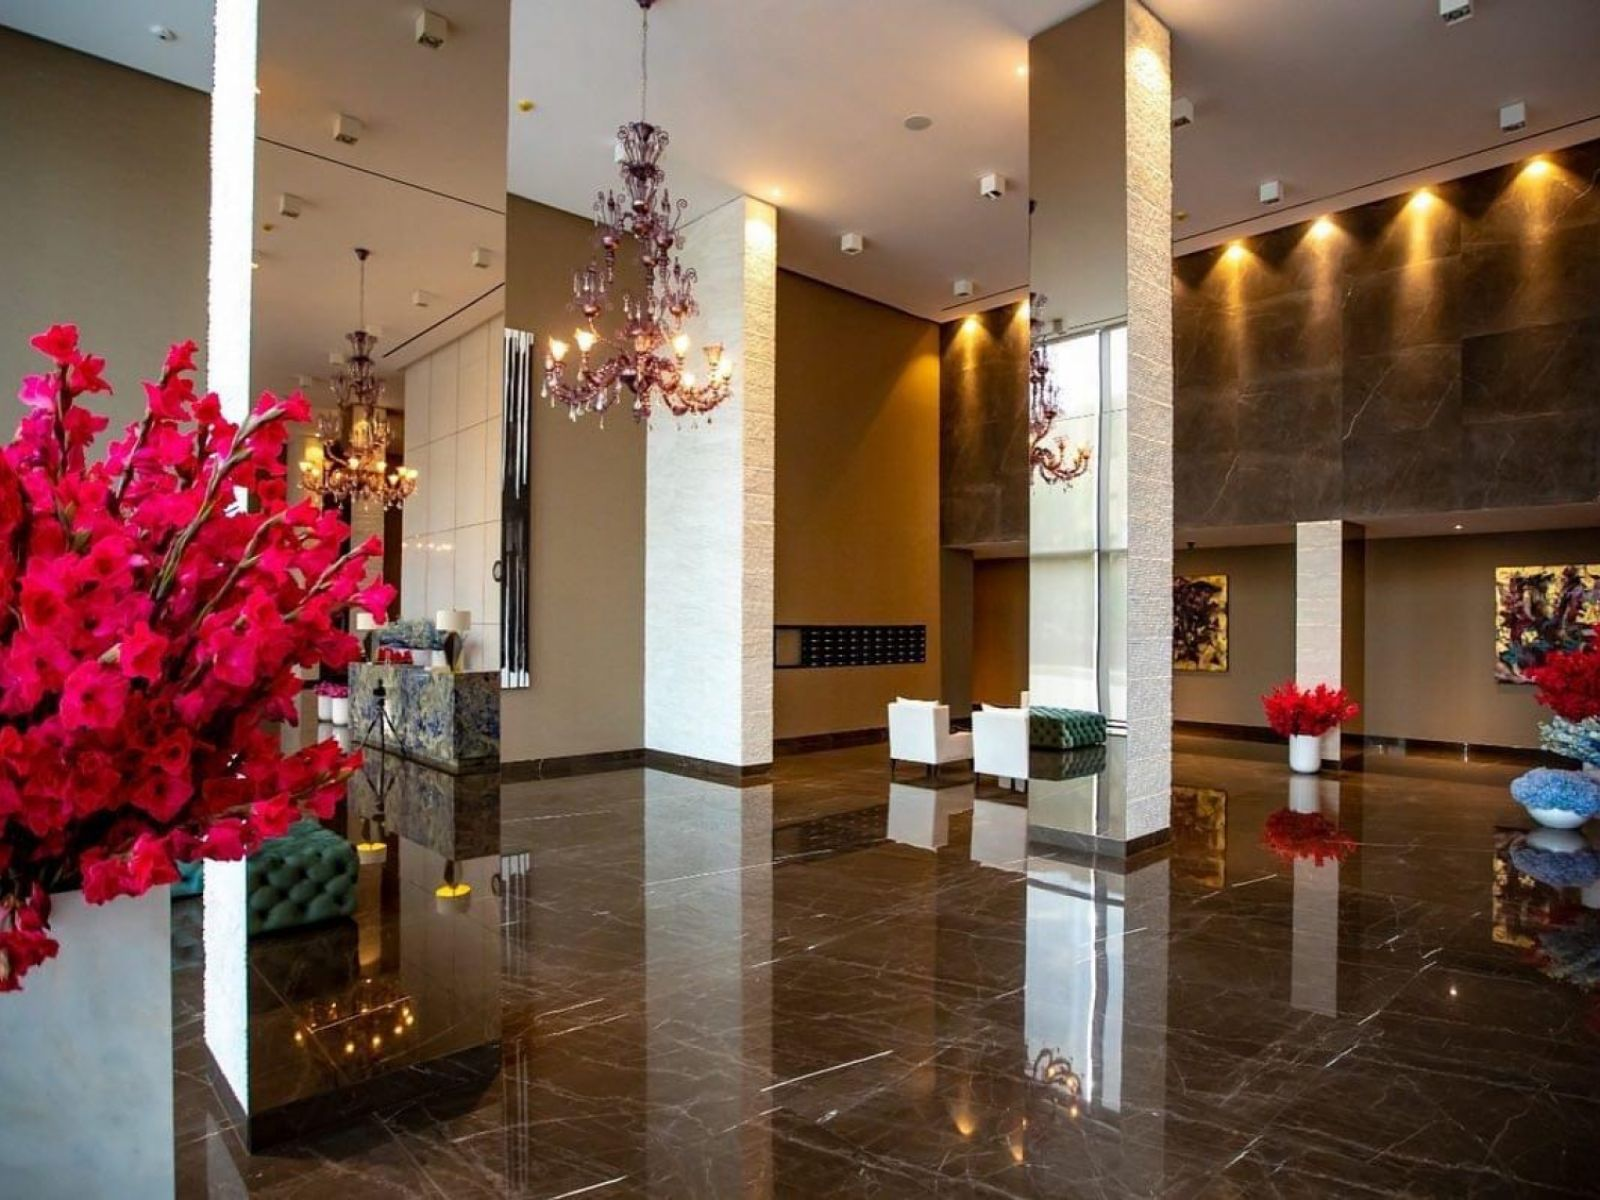 State of the art lobby and outstanding residential design at One Rahmaninov